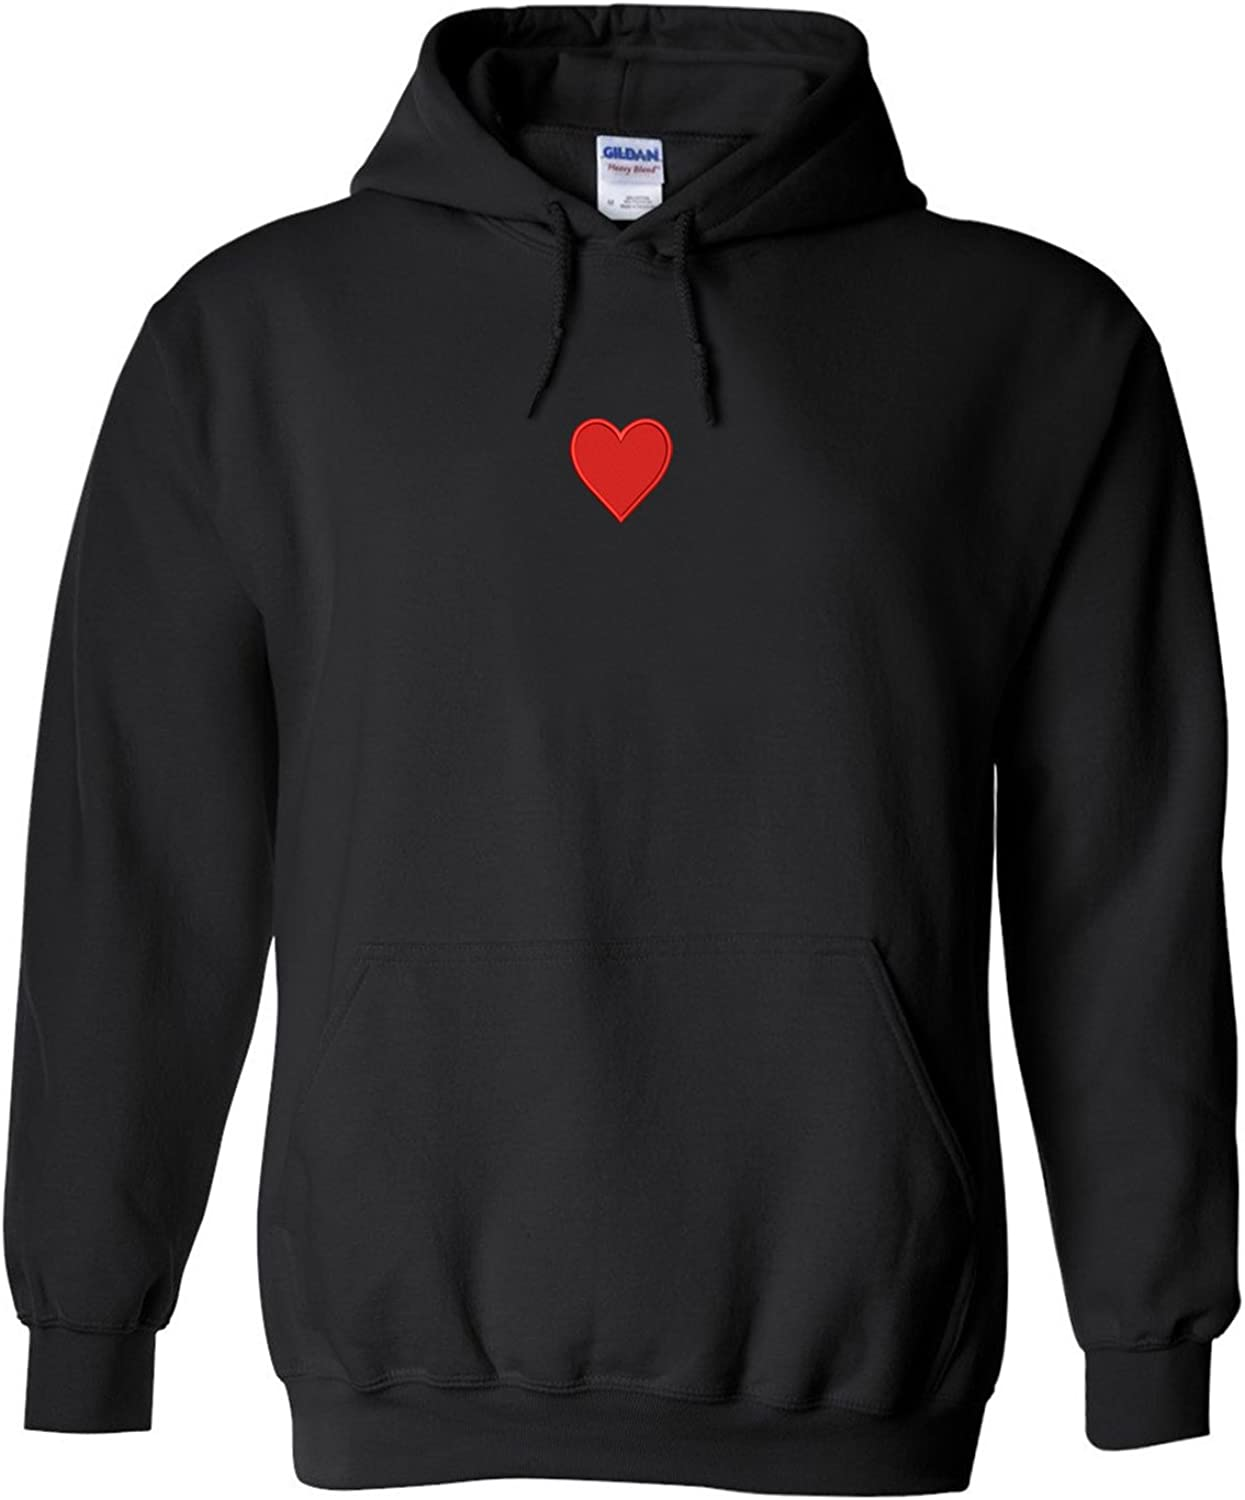 Trendy Apparel Shop Emoticon Heart Embroidered Heavy Blend Hoodie